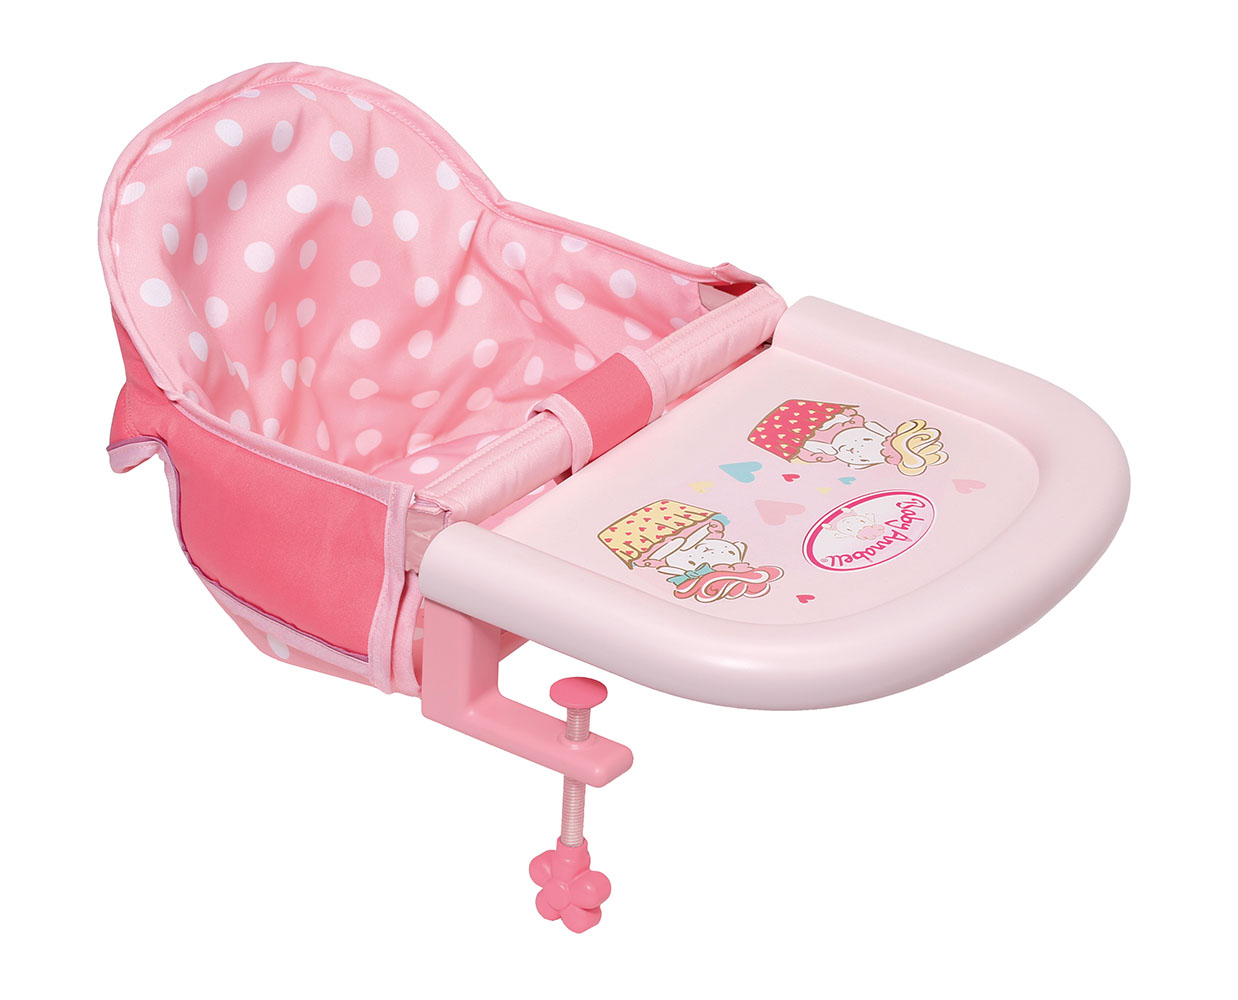 Baby Chaise Baby Table Annabell De Chaise Baby Annabell De Table BrdxeCoQW